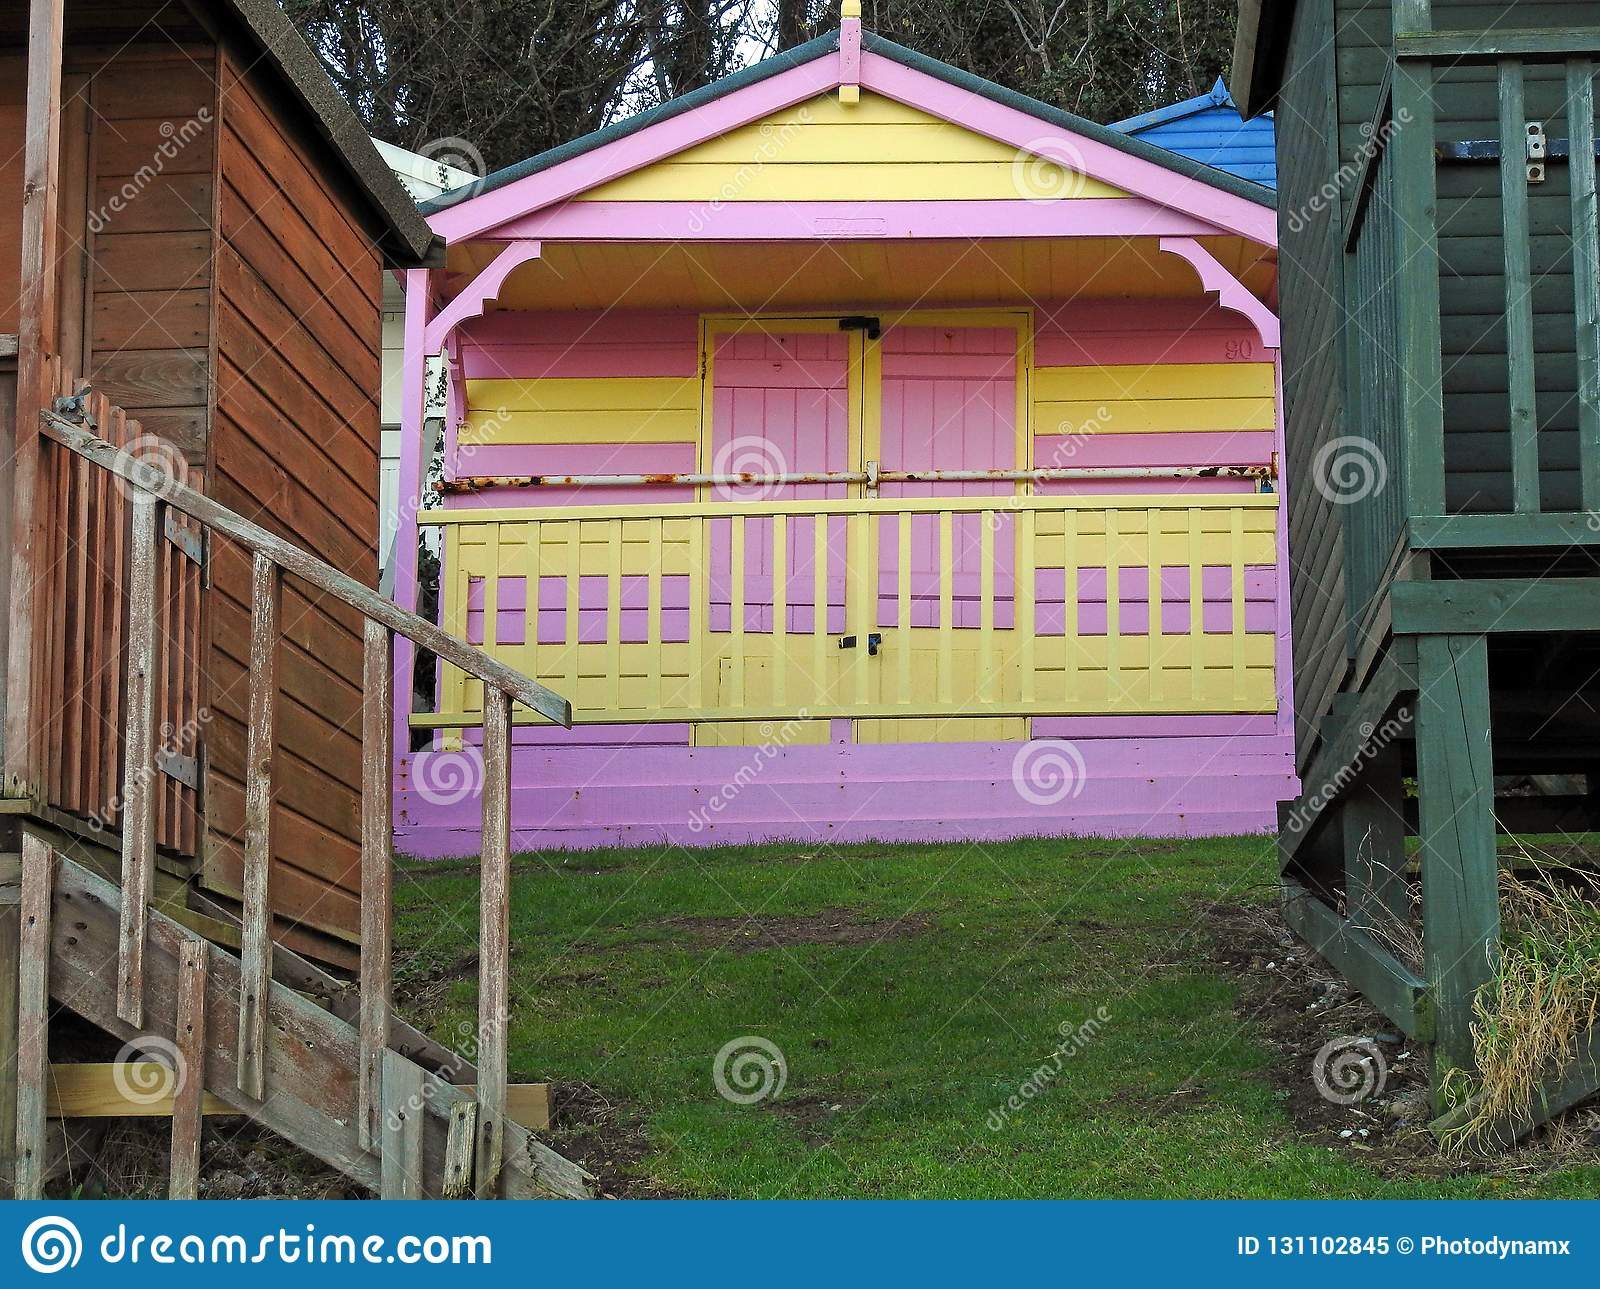 Beach Huts Chalets Sheds In A Row By The Coast Stock Image - Image